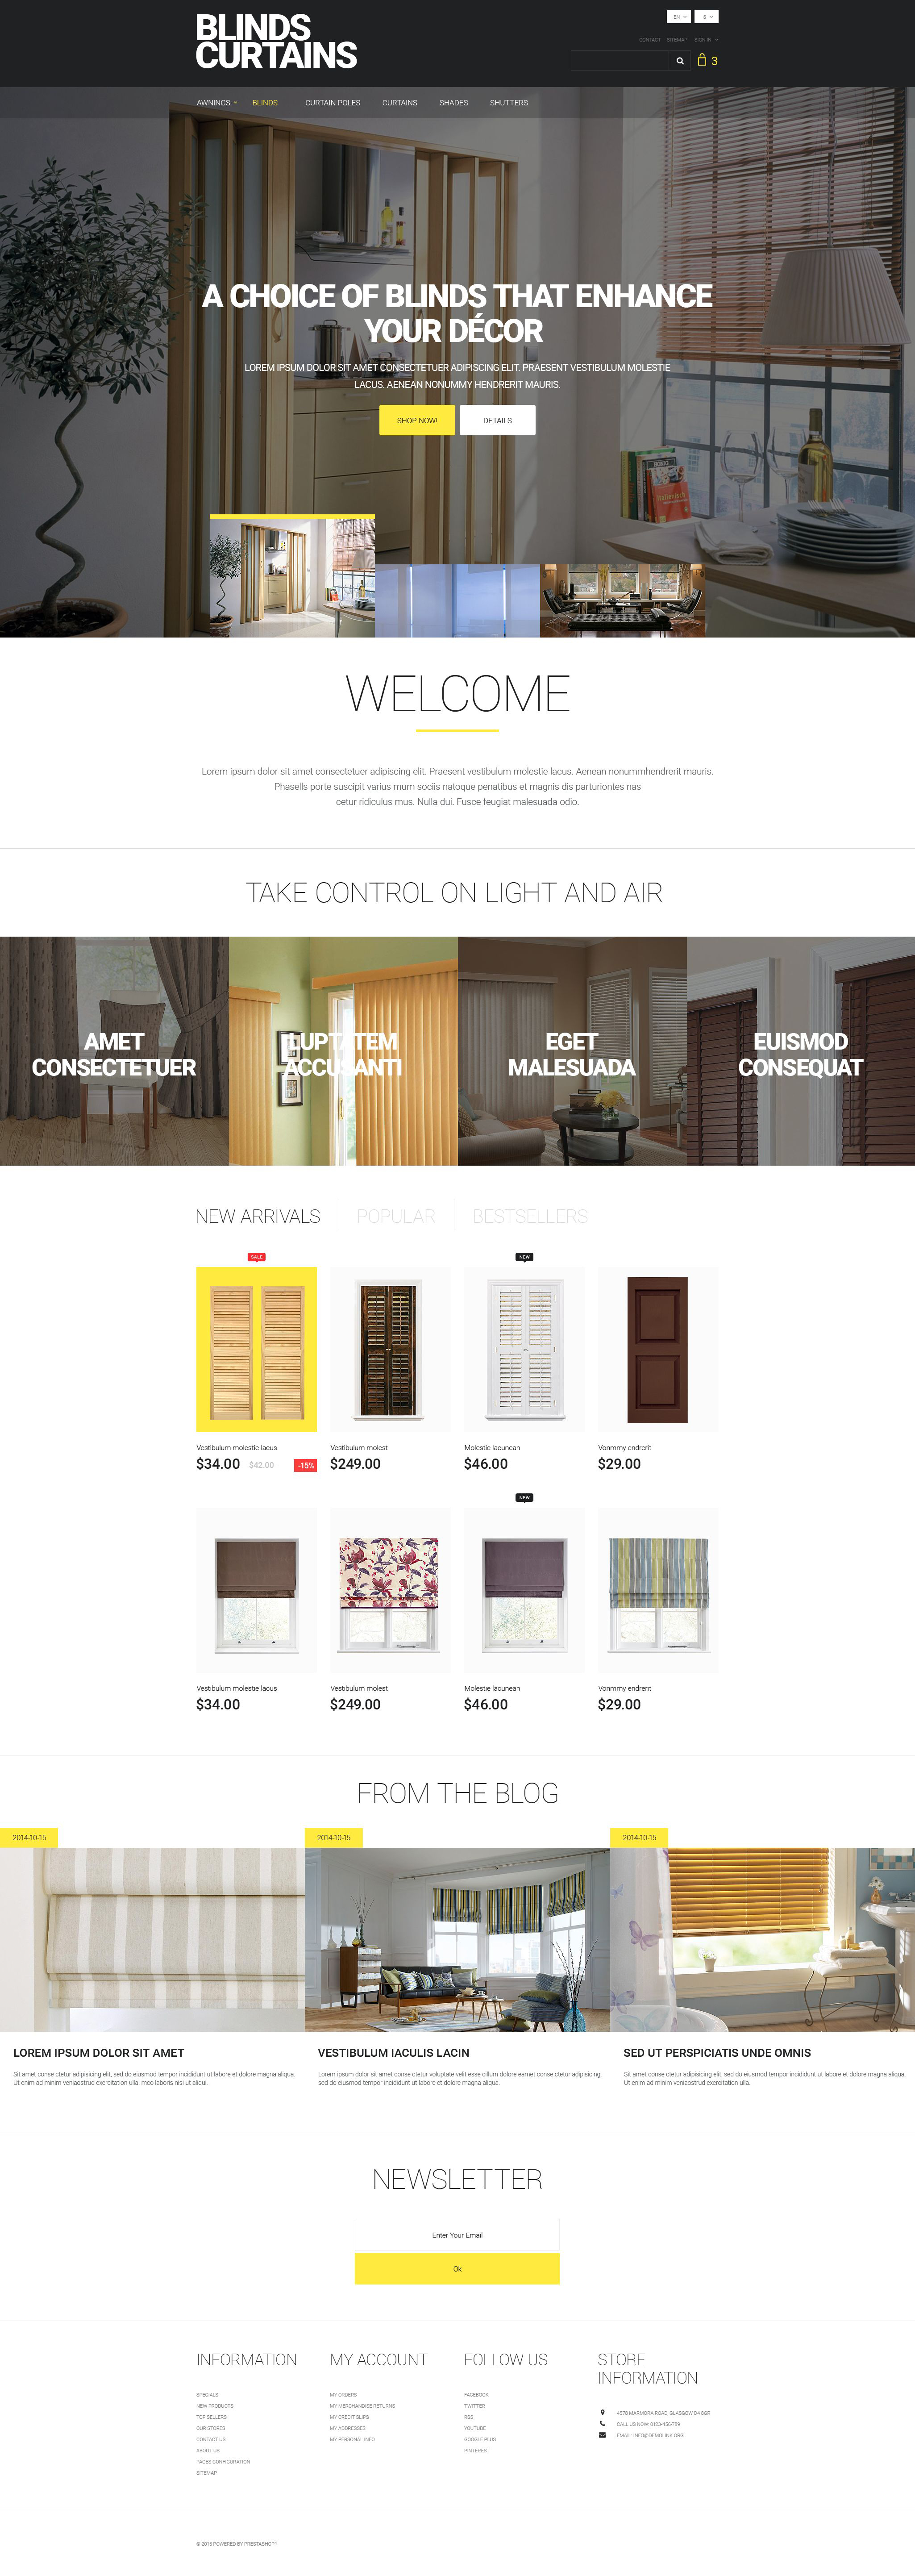 The Interior Blinds & Curtains Store Curtains PrestaShop Design 53915, one of the best PrestaShop themes of its kind (interior & furniture, most popular), also known as Interior Blinds & Curtains Store curtains PrestaShop template, blinds PrestaShop template, and wood PrestaShop template, venetian PrestaShop template, window-blind PrestaShop template, shutters PrestaShop template, roller PrestaShop template, shopping cart store PrestaShop template, shop PrestaShop template, servicescurtais and related with Interior Blinds & Curtains Store curtains, blinds, and wood, venetian, window-blind, shutters, roller, shopping cart store, shop, servicescurtais, etc.